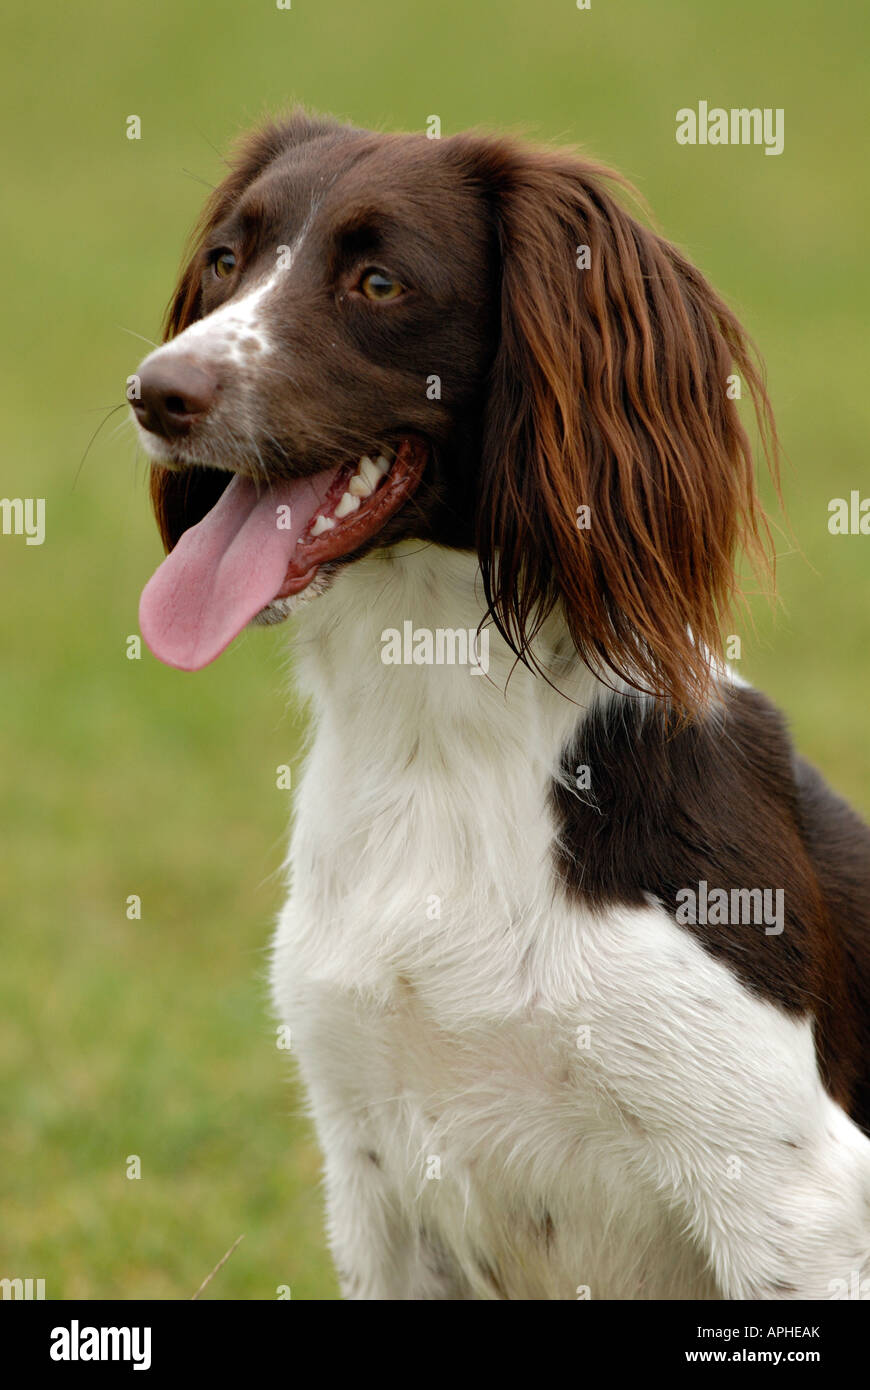 a mad springer spaniel with ears flopping or flying in the wind having fun - Stock Image